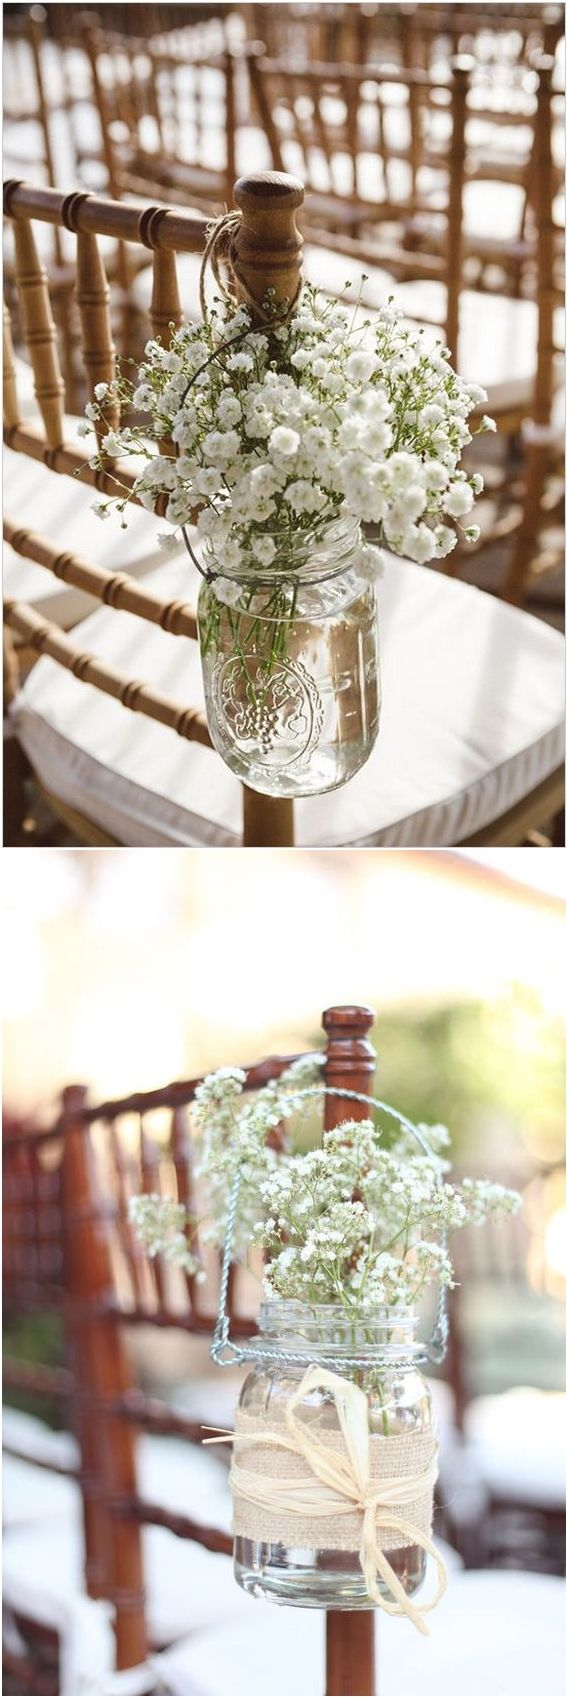 Rustic mason jar wedding chair decor ideas #weddings #rusticwedding #weddingideas